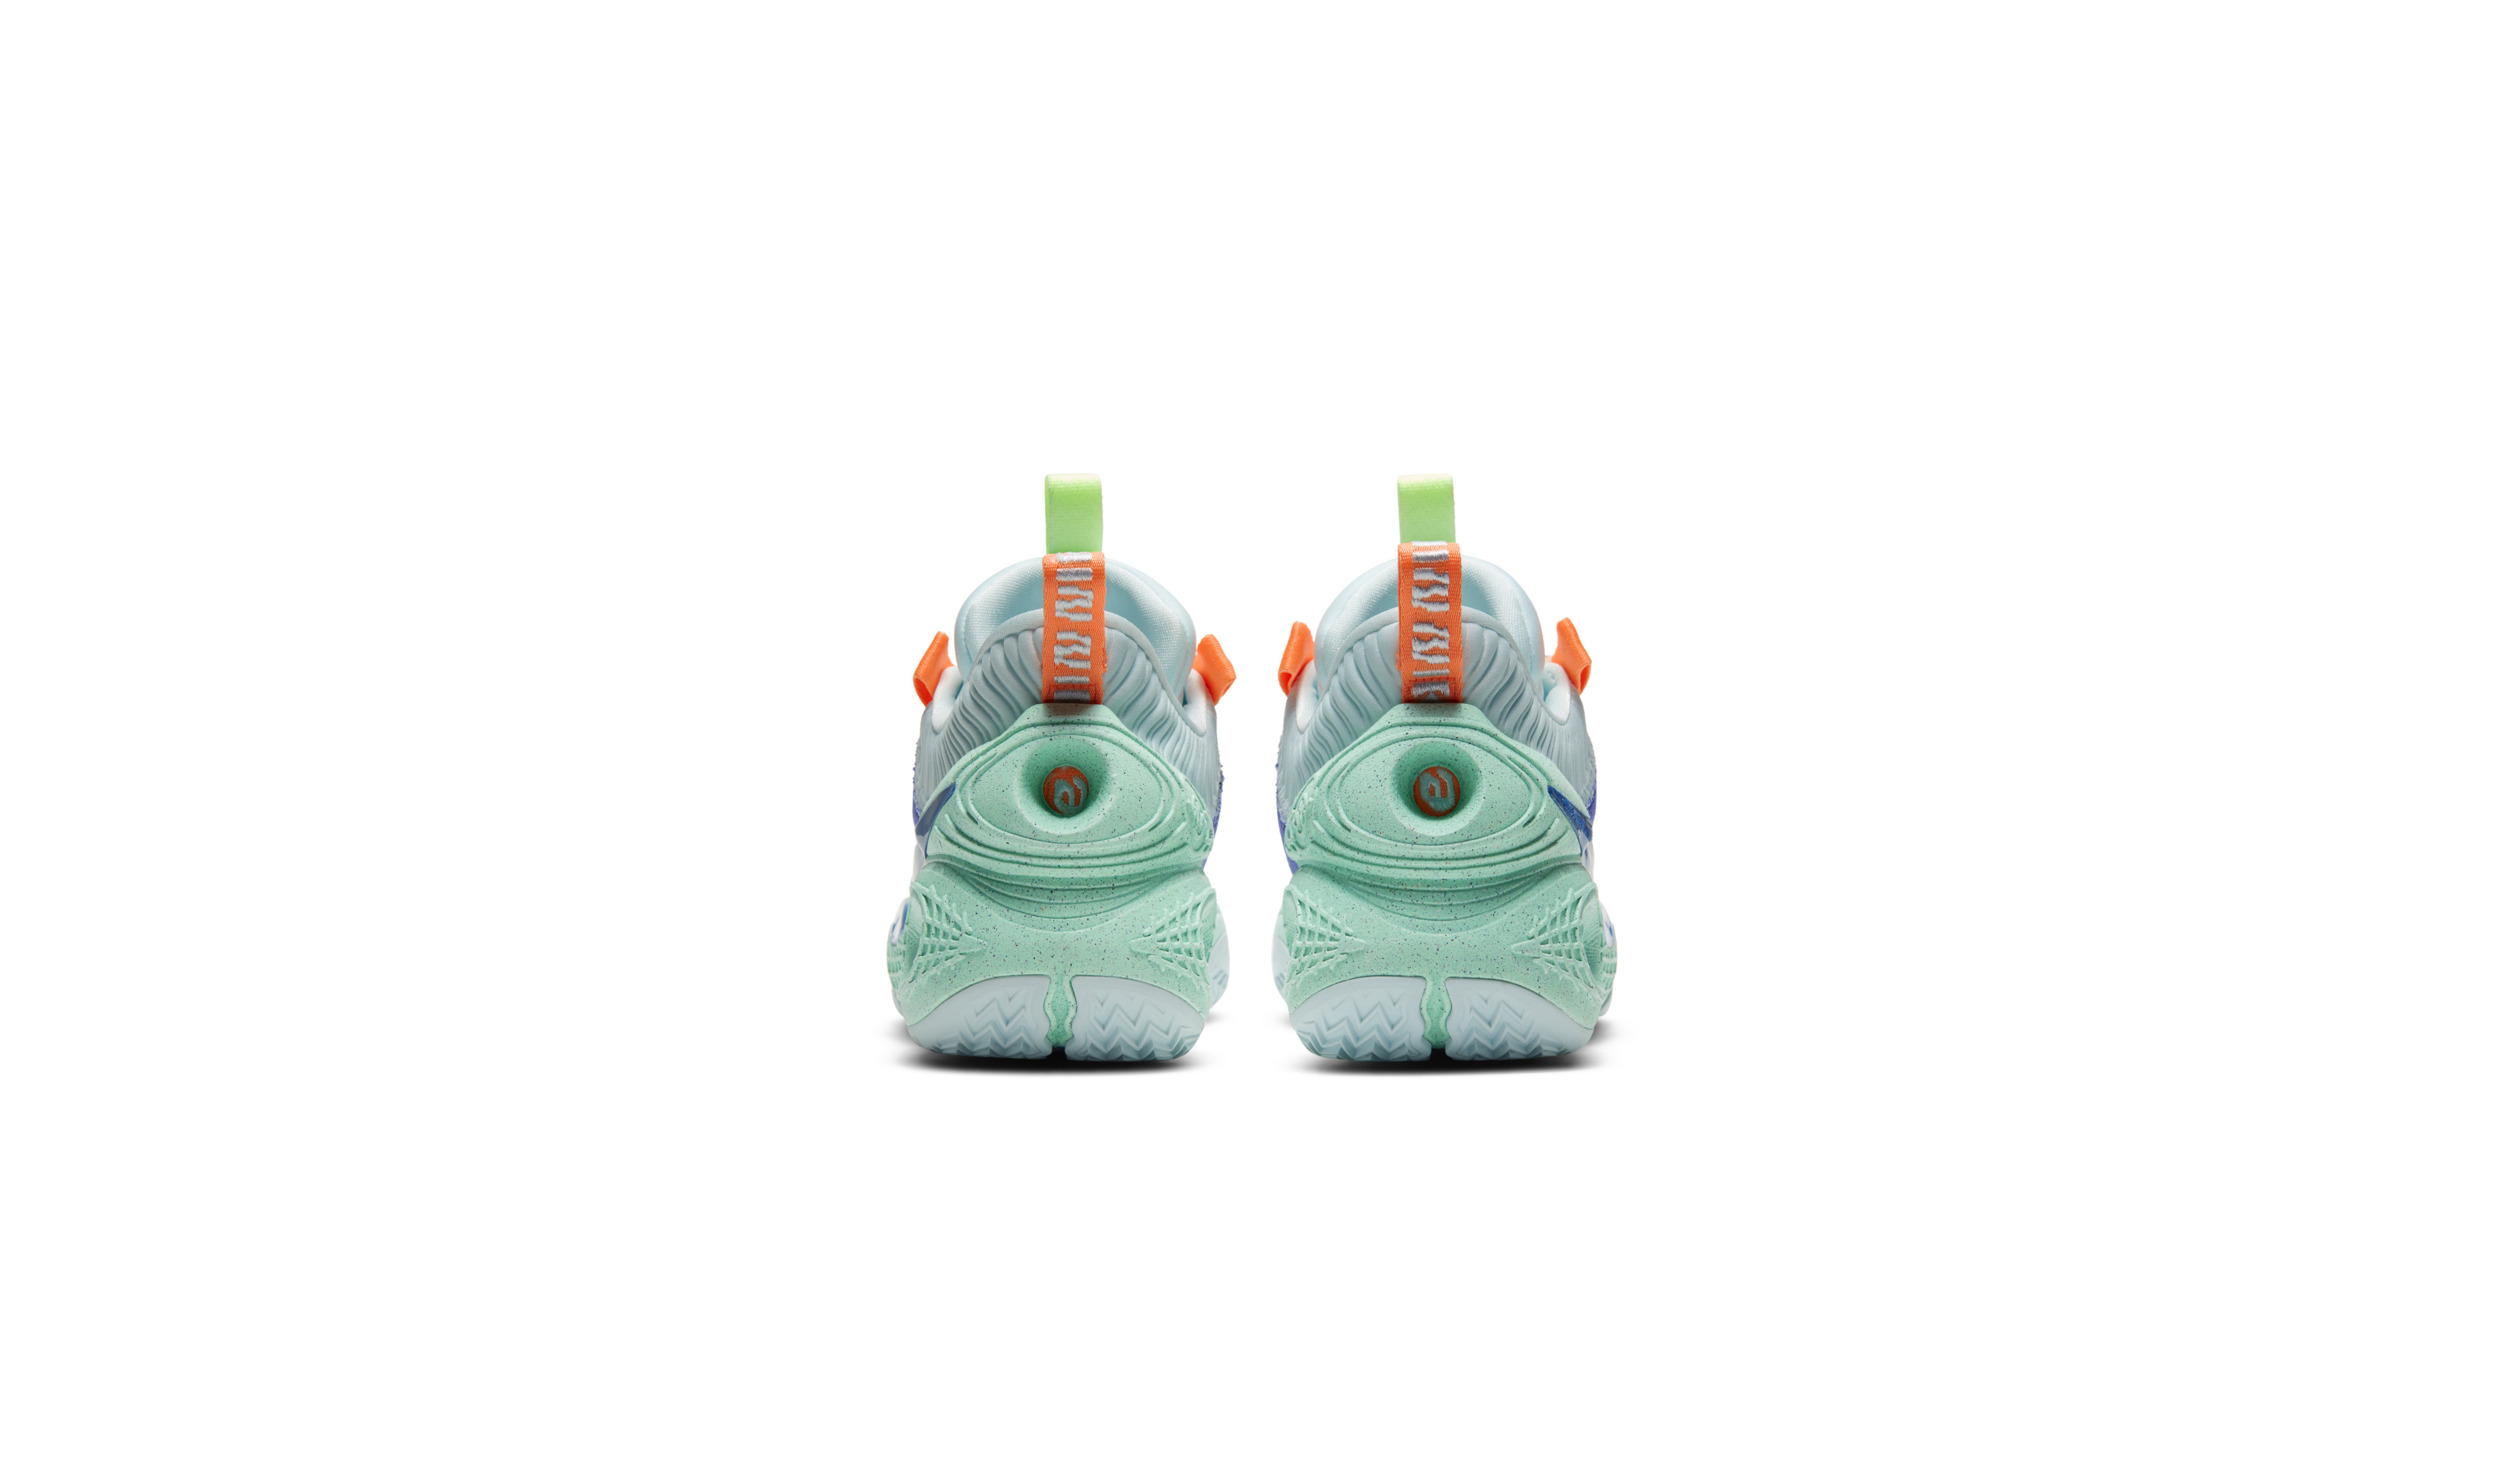 Nike Cosmic Unity Amalgam Sapphire / Atomic Orange / Glacier Blue / Green Glow